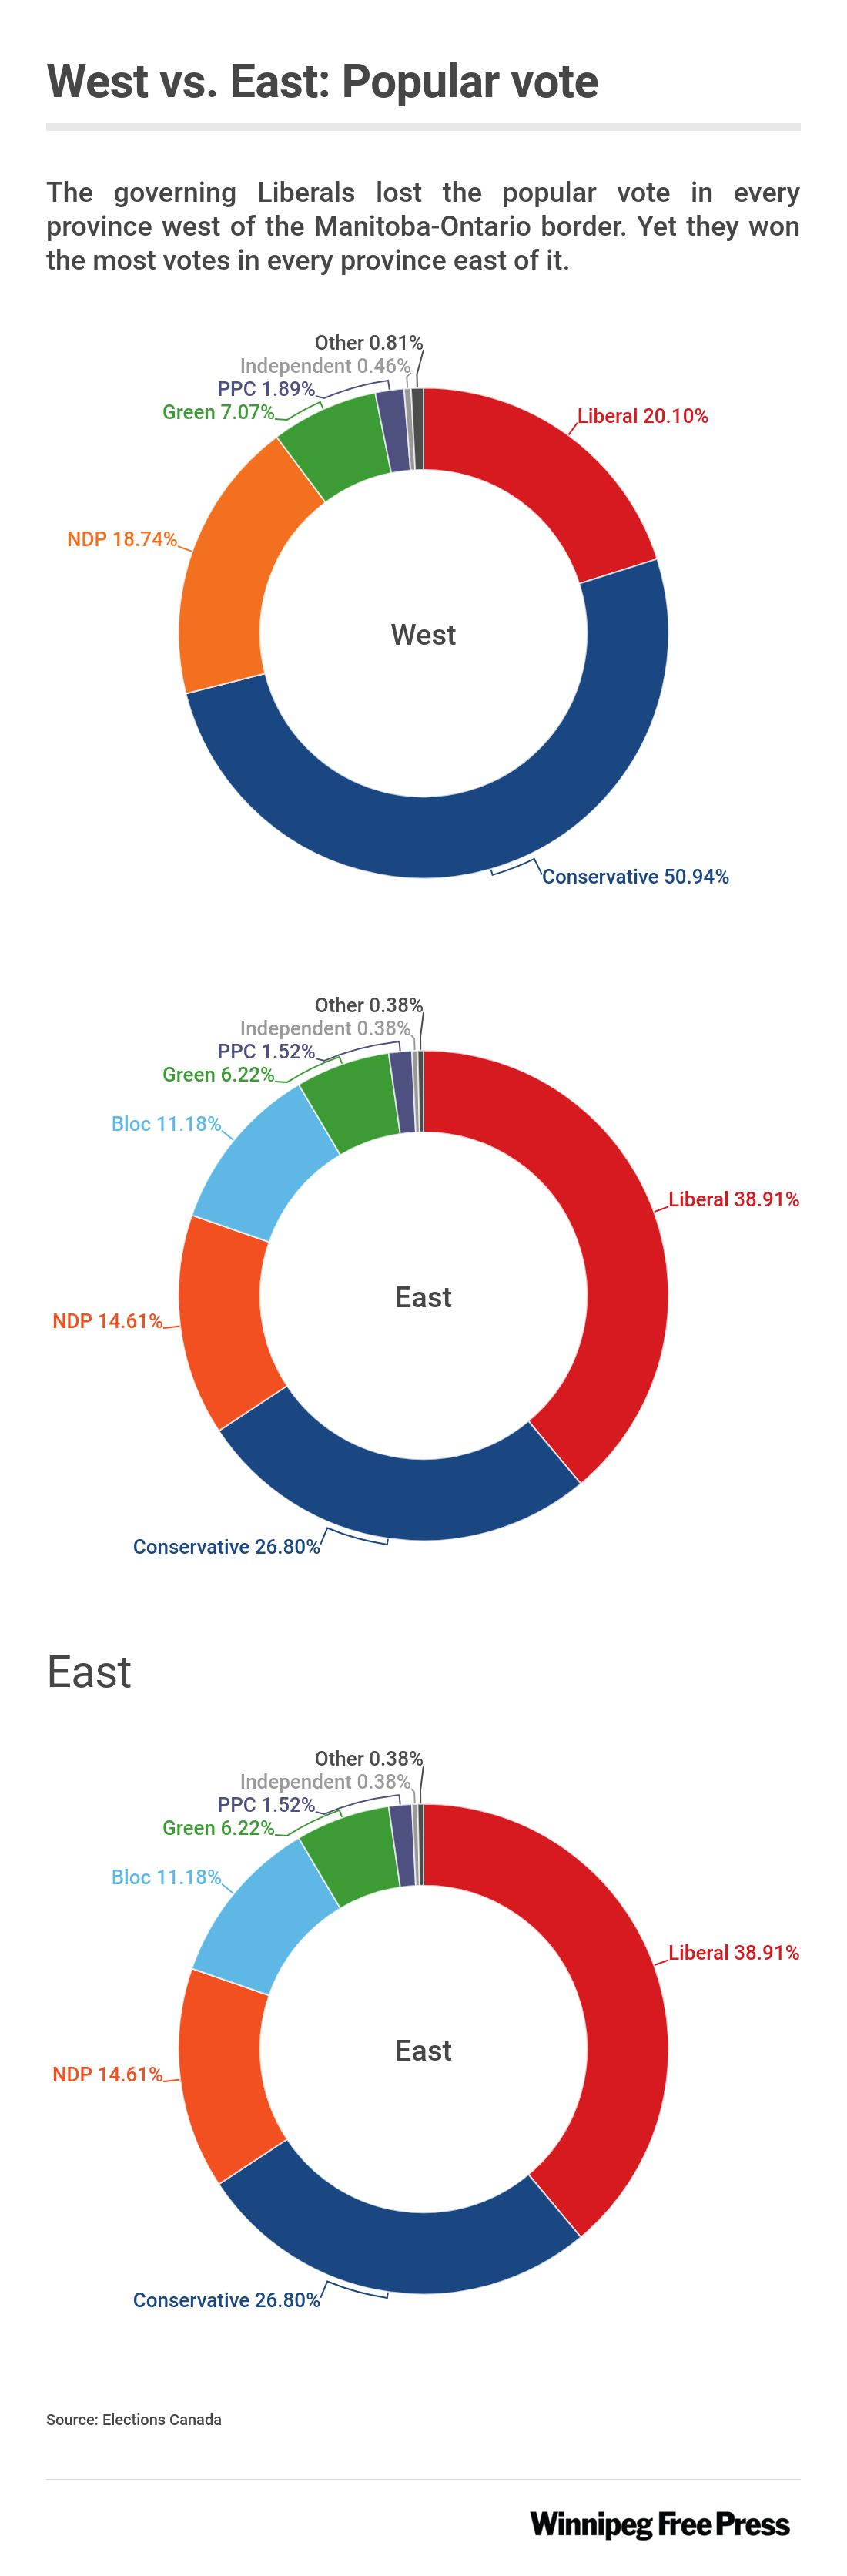 Graphic comparing popular vote east and west of the Manitoba-Ontario border